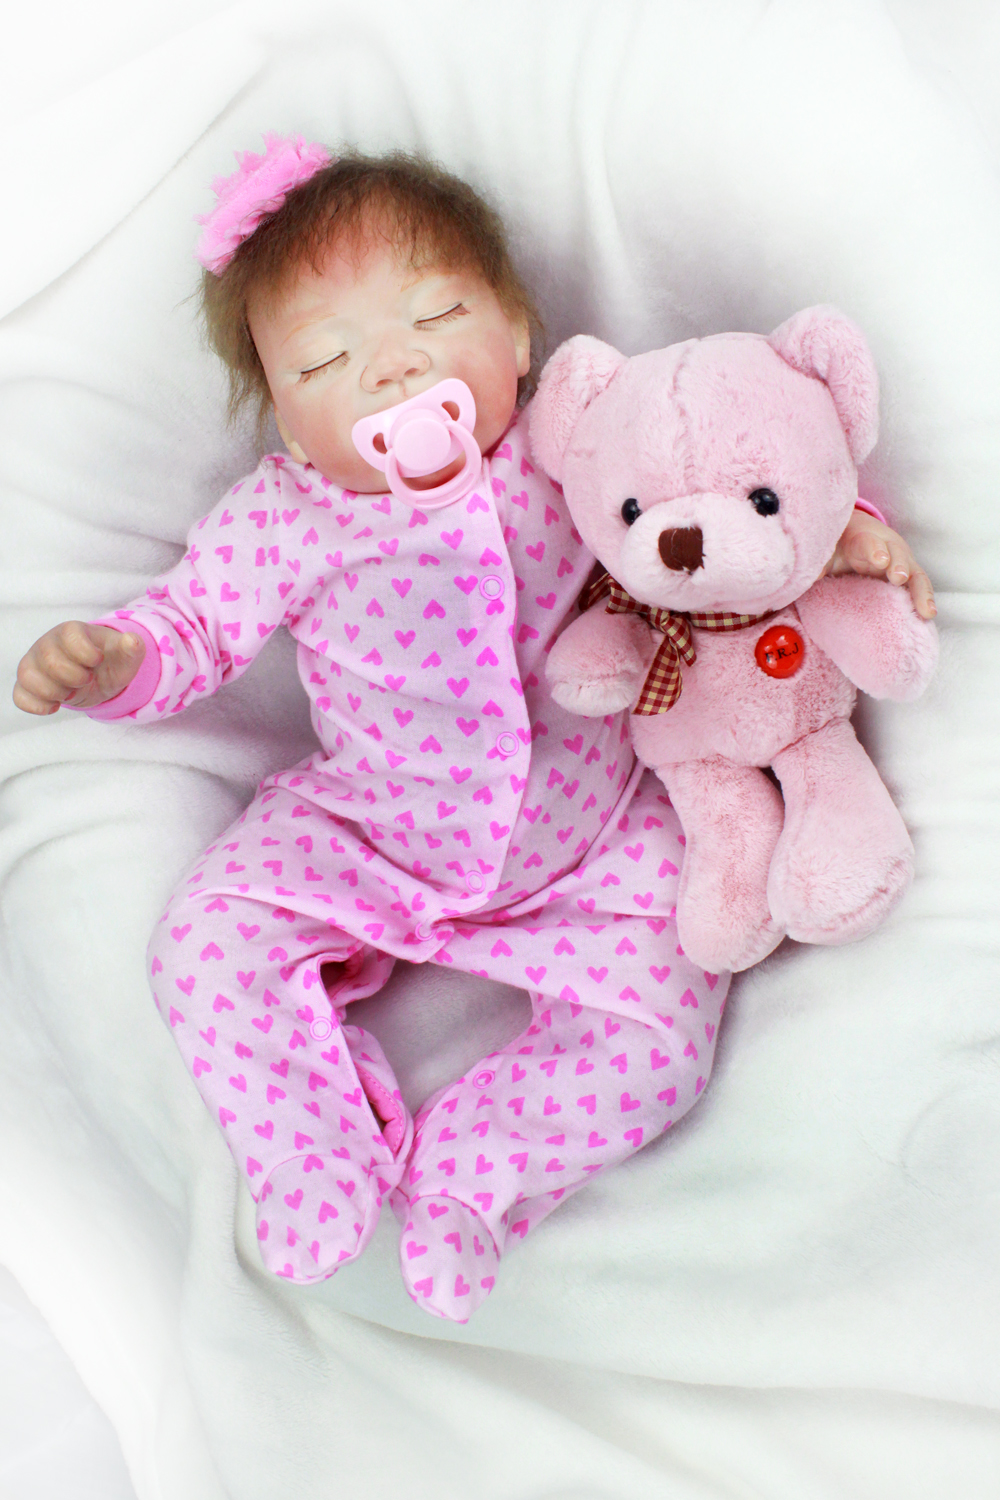 Pursue 20/50 cm Pink Newborn Baby Alive Doll Reborn Silicone Baby Girl Dolls for Children Girl Boy House Play Bedtime Doll Toys pursue 22 56 cm big smile face reborn boy toddler baby doll cotton body vinyl silicone baby boy doll for children birthday gift